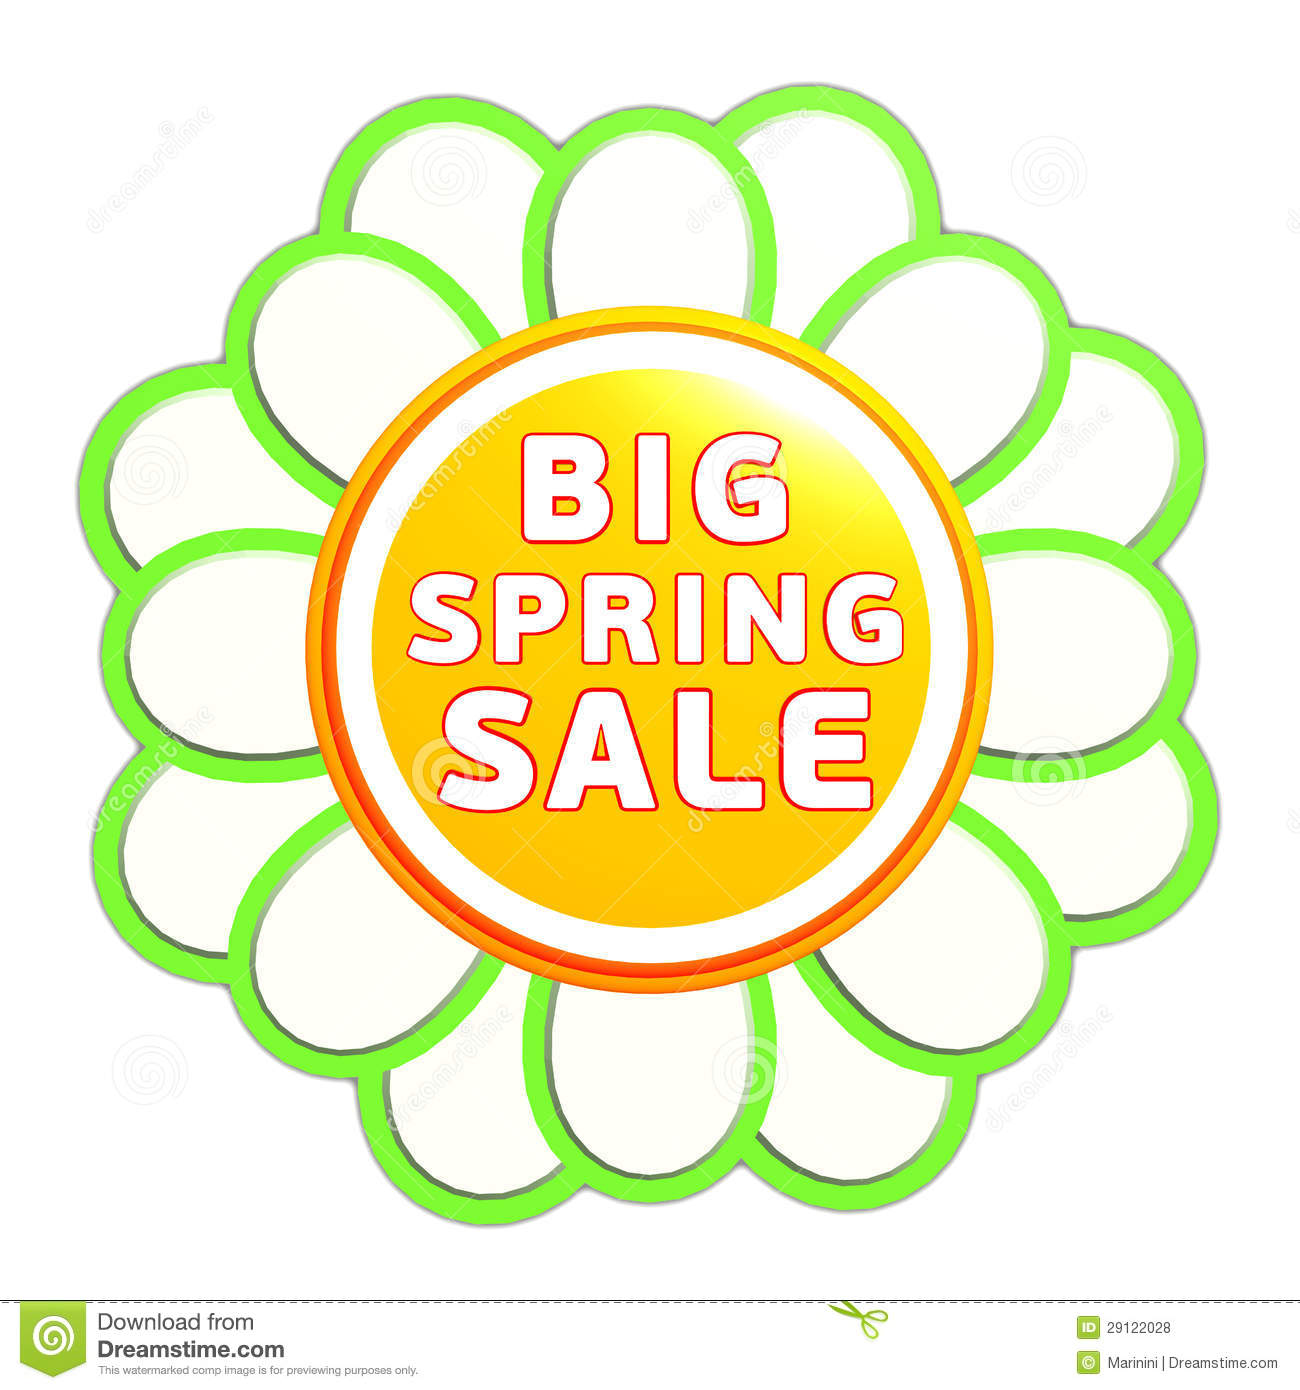 Spring Sale Clip Art Big spring sale green orange